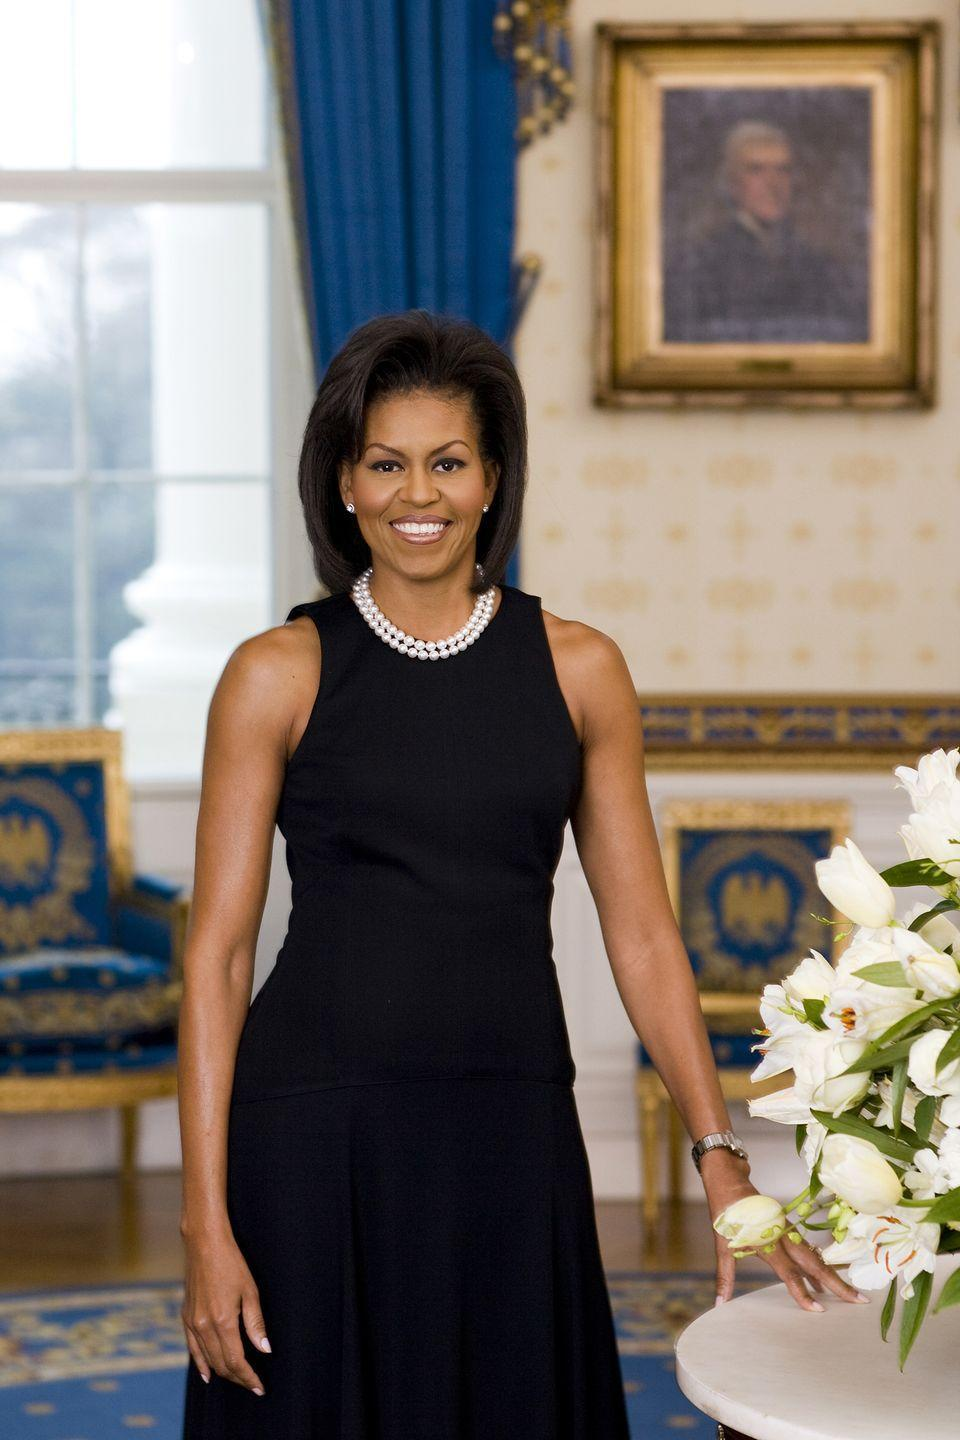 "<p>Michelle Obama didn't wear sleeves in her 2008 White House portrait, and people <a href=""http://abcnews.go.com/GMA/story?id=6986019&page=1"" rel=""nofollow noopener"" target=""_blank"" data-ylk=""slk:lost it"" class=""link rapid-noclick-resp"">lost it</a>— calling it ""too informal"" and ""out of season."" </p>"